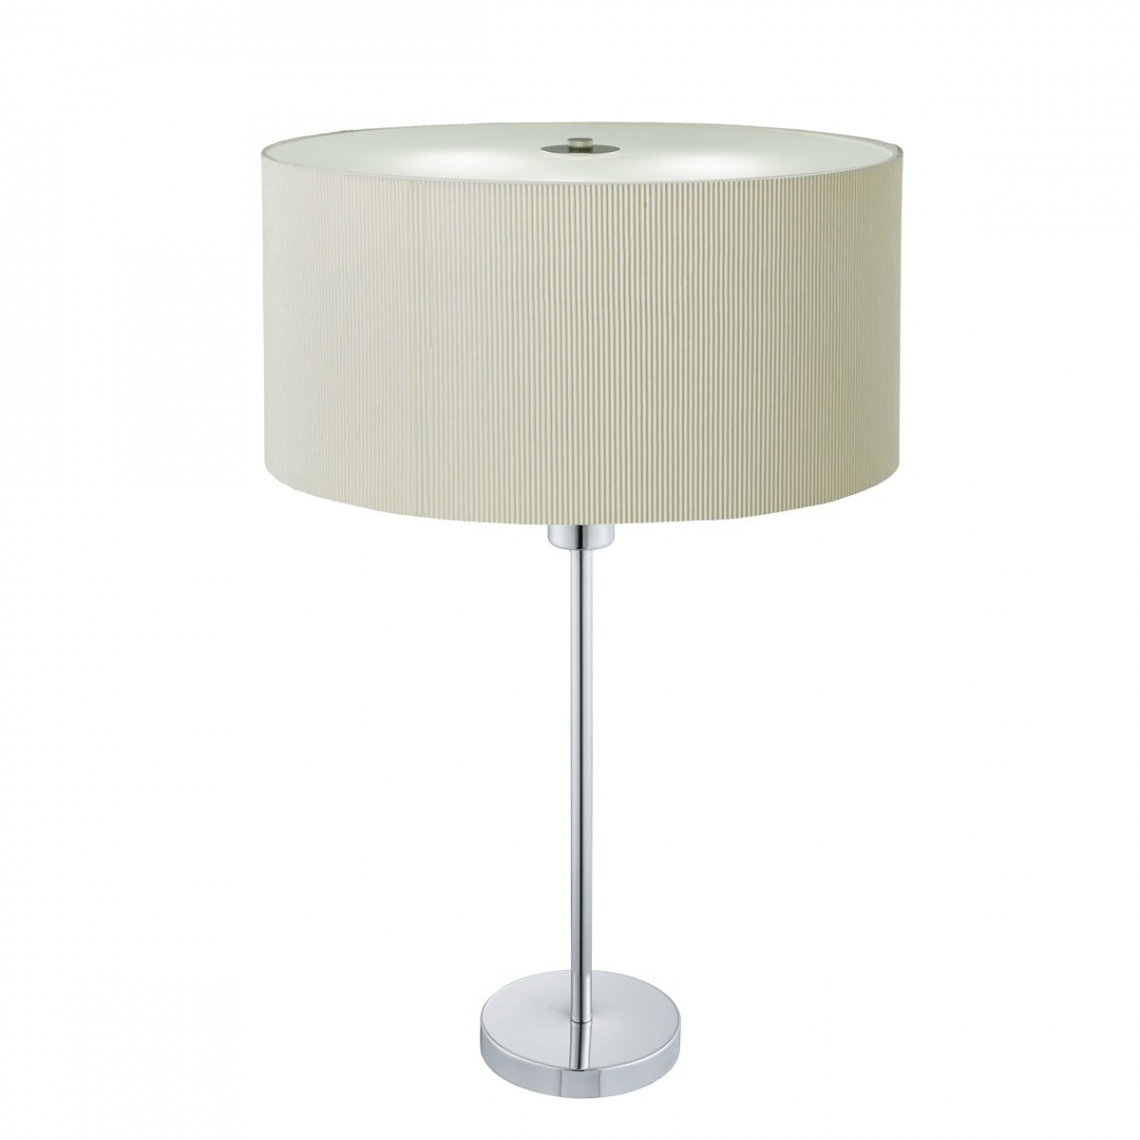 Drum Pleat Chrome 2 Light Table Lamp With Cream Shade